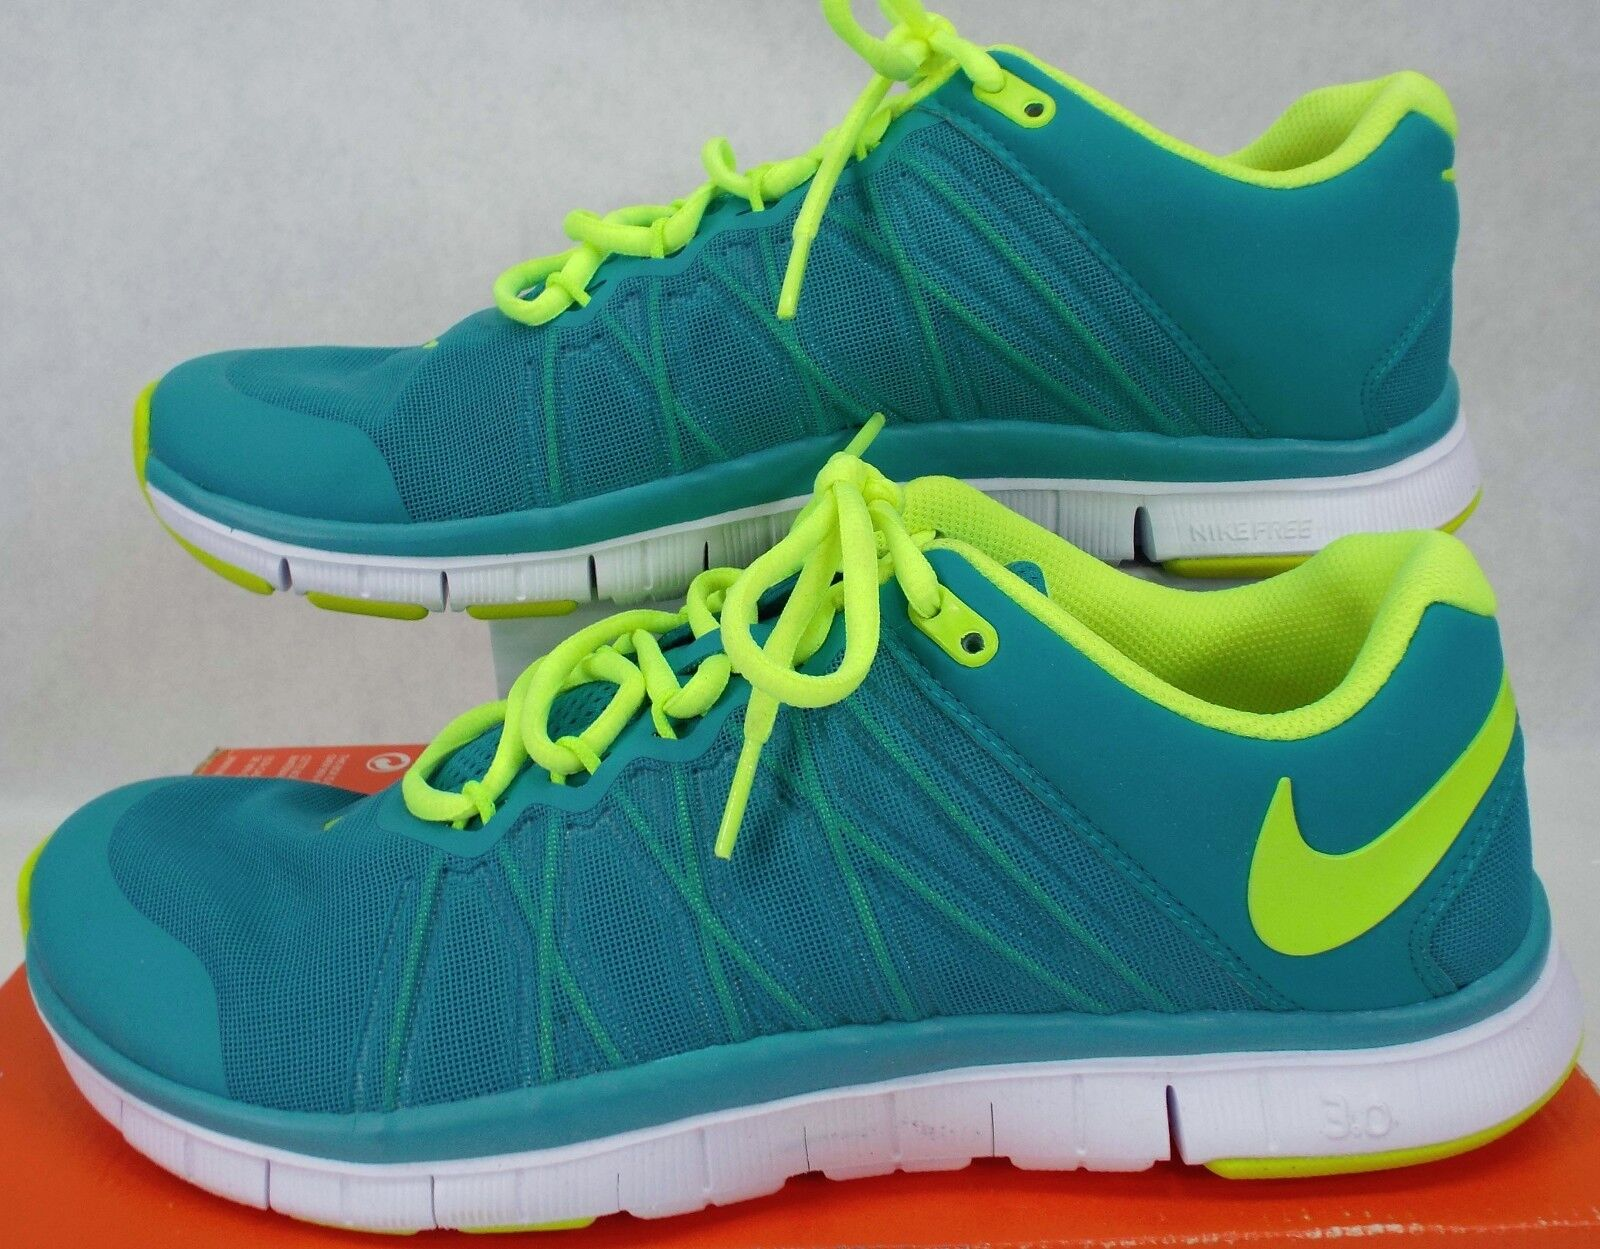 New Mens 11 NIKE Free Trainer 3.0 Turbo Green Shoes 110 630856-371